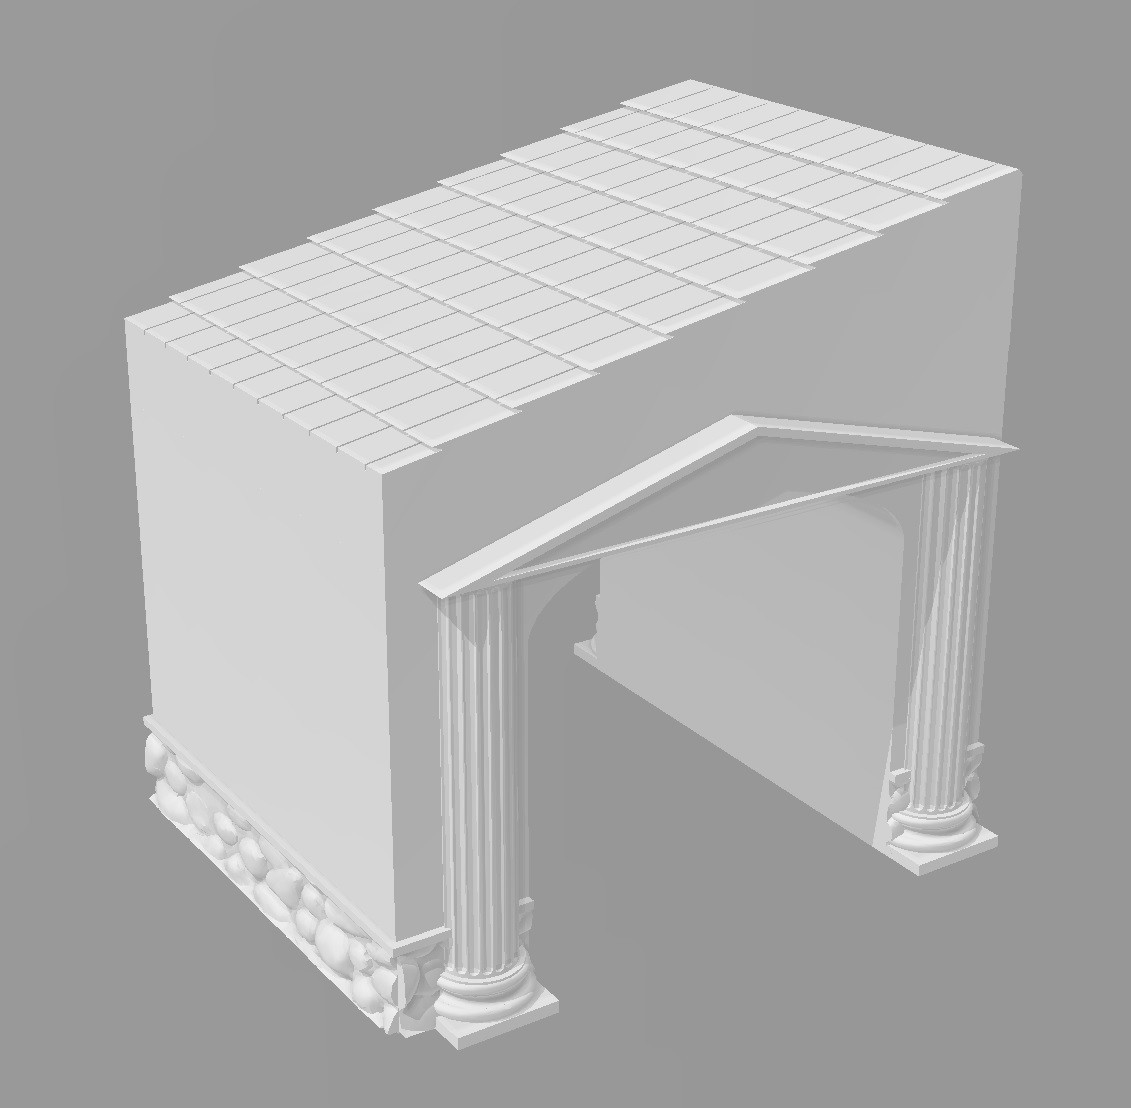 Extension maison antique.jpg Download STL file Ancient city - Wargame • 3D printer object, Eskice